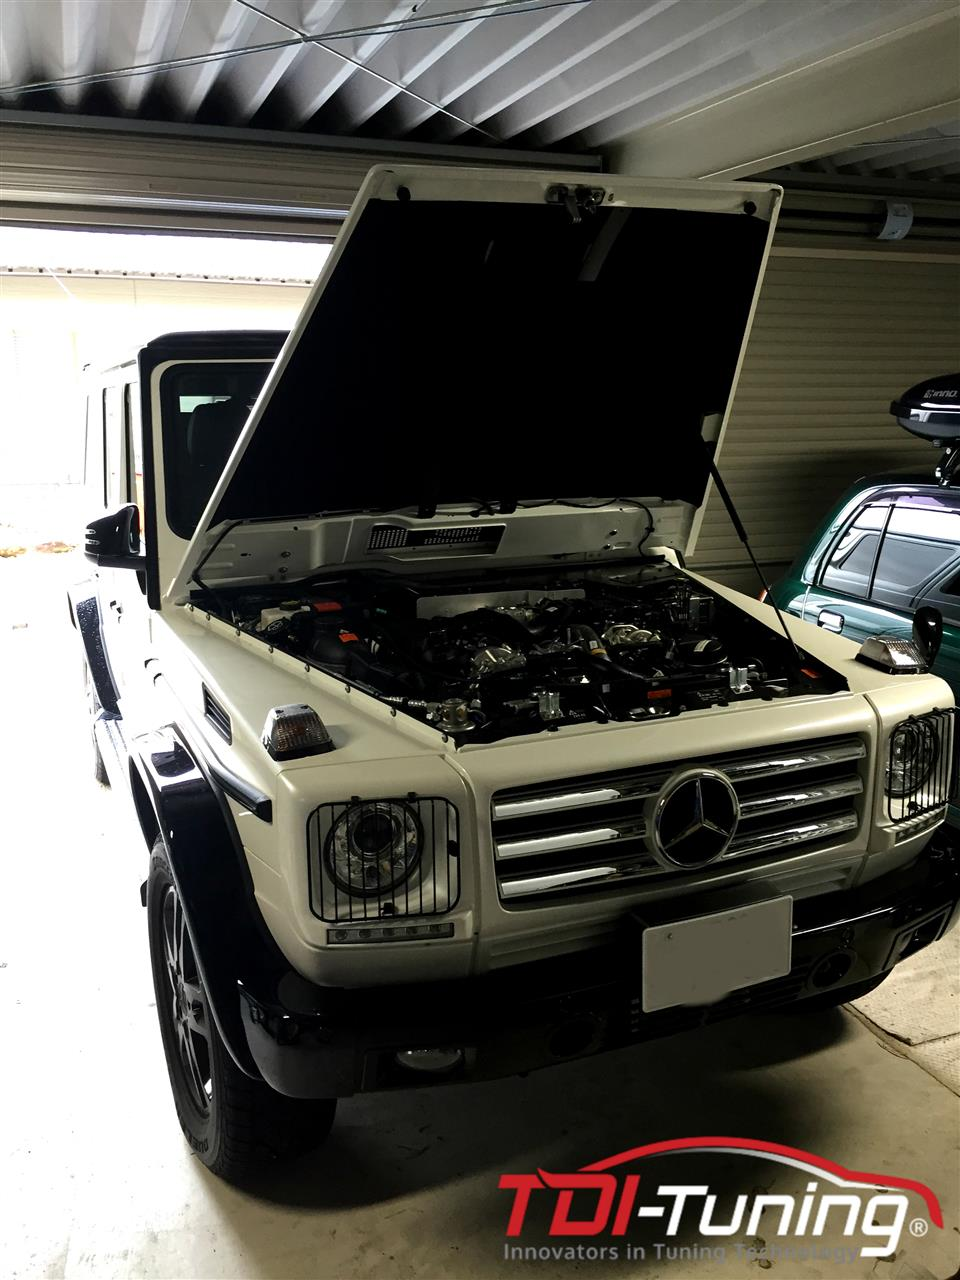 MERCEDES G350 BlueTEC ディーゼルサブコンTDI Tuning TWIN